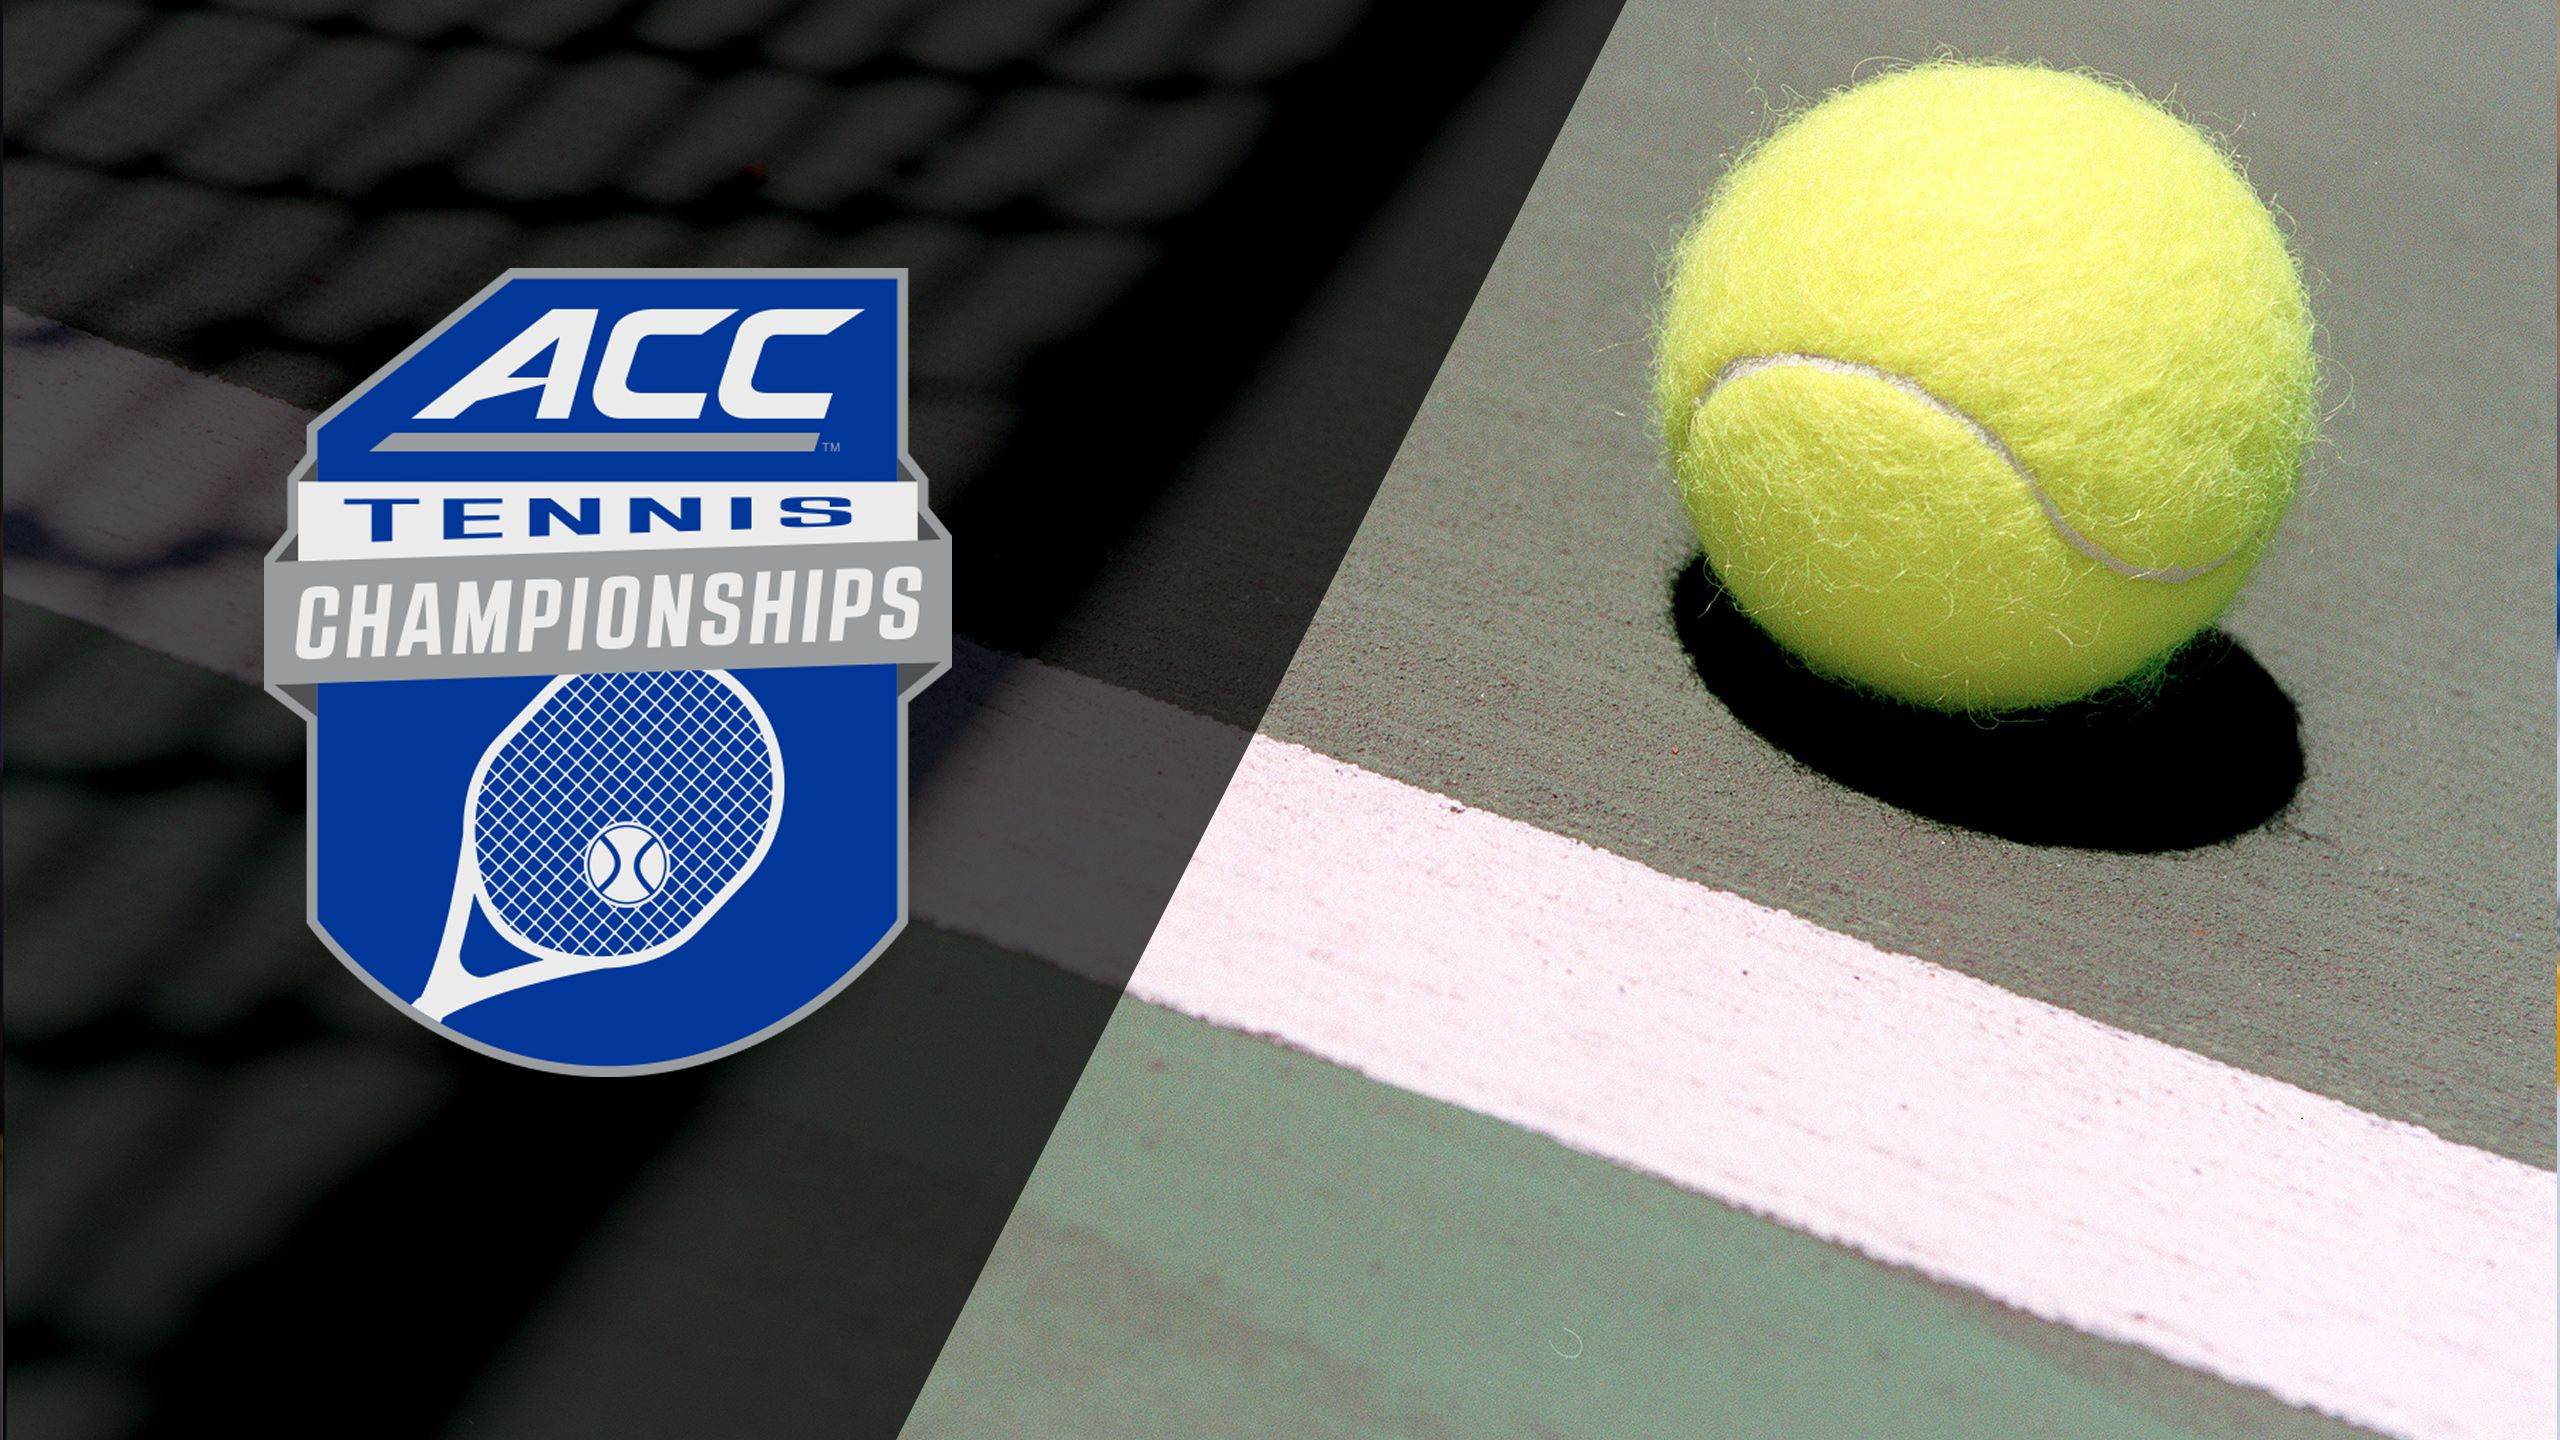 ACC Women's Tennis Tournament